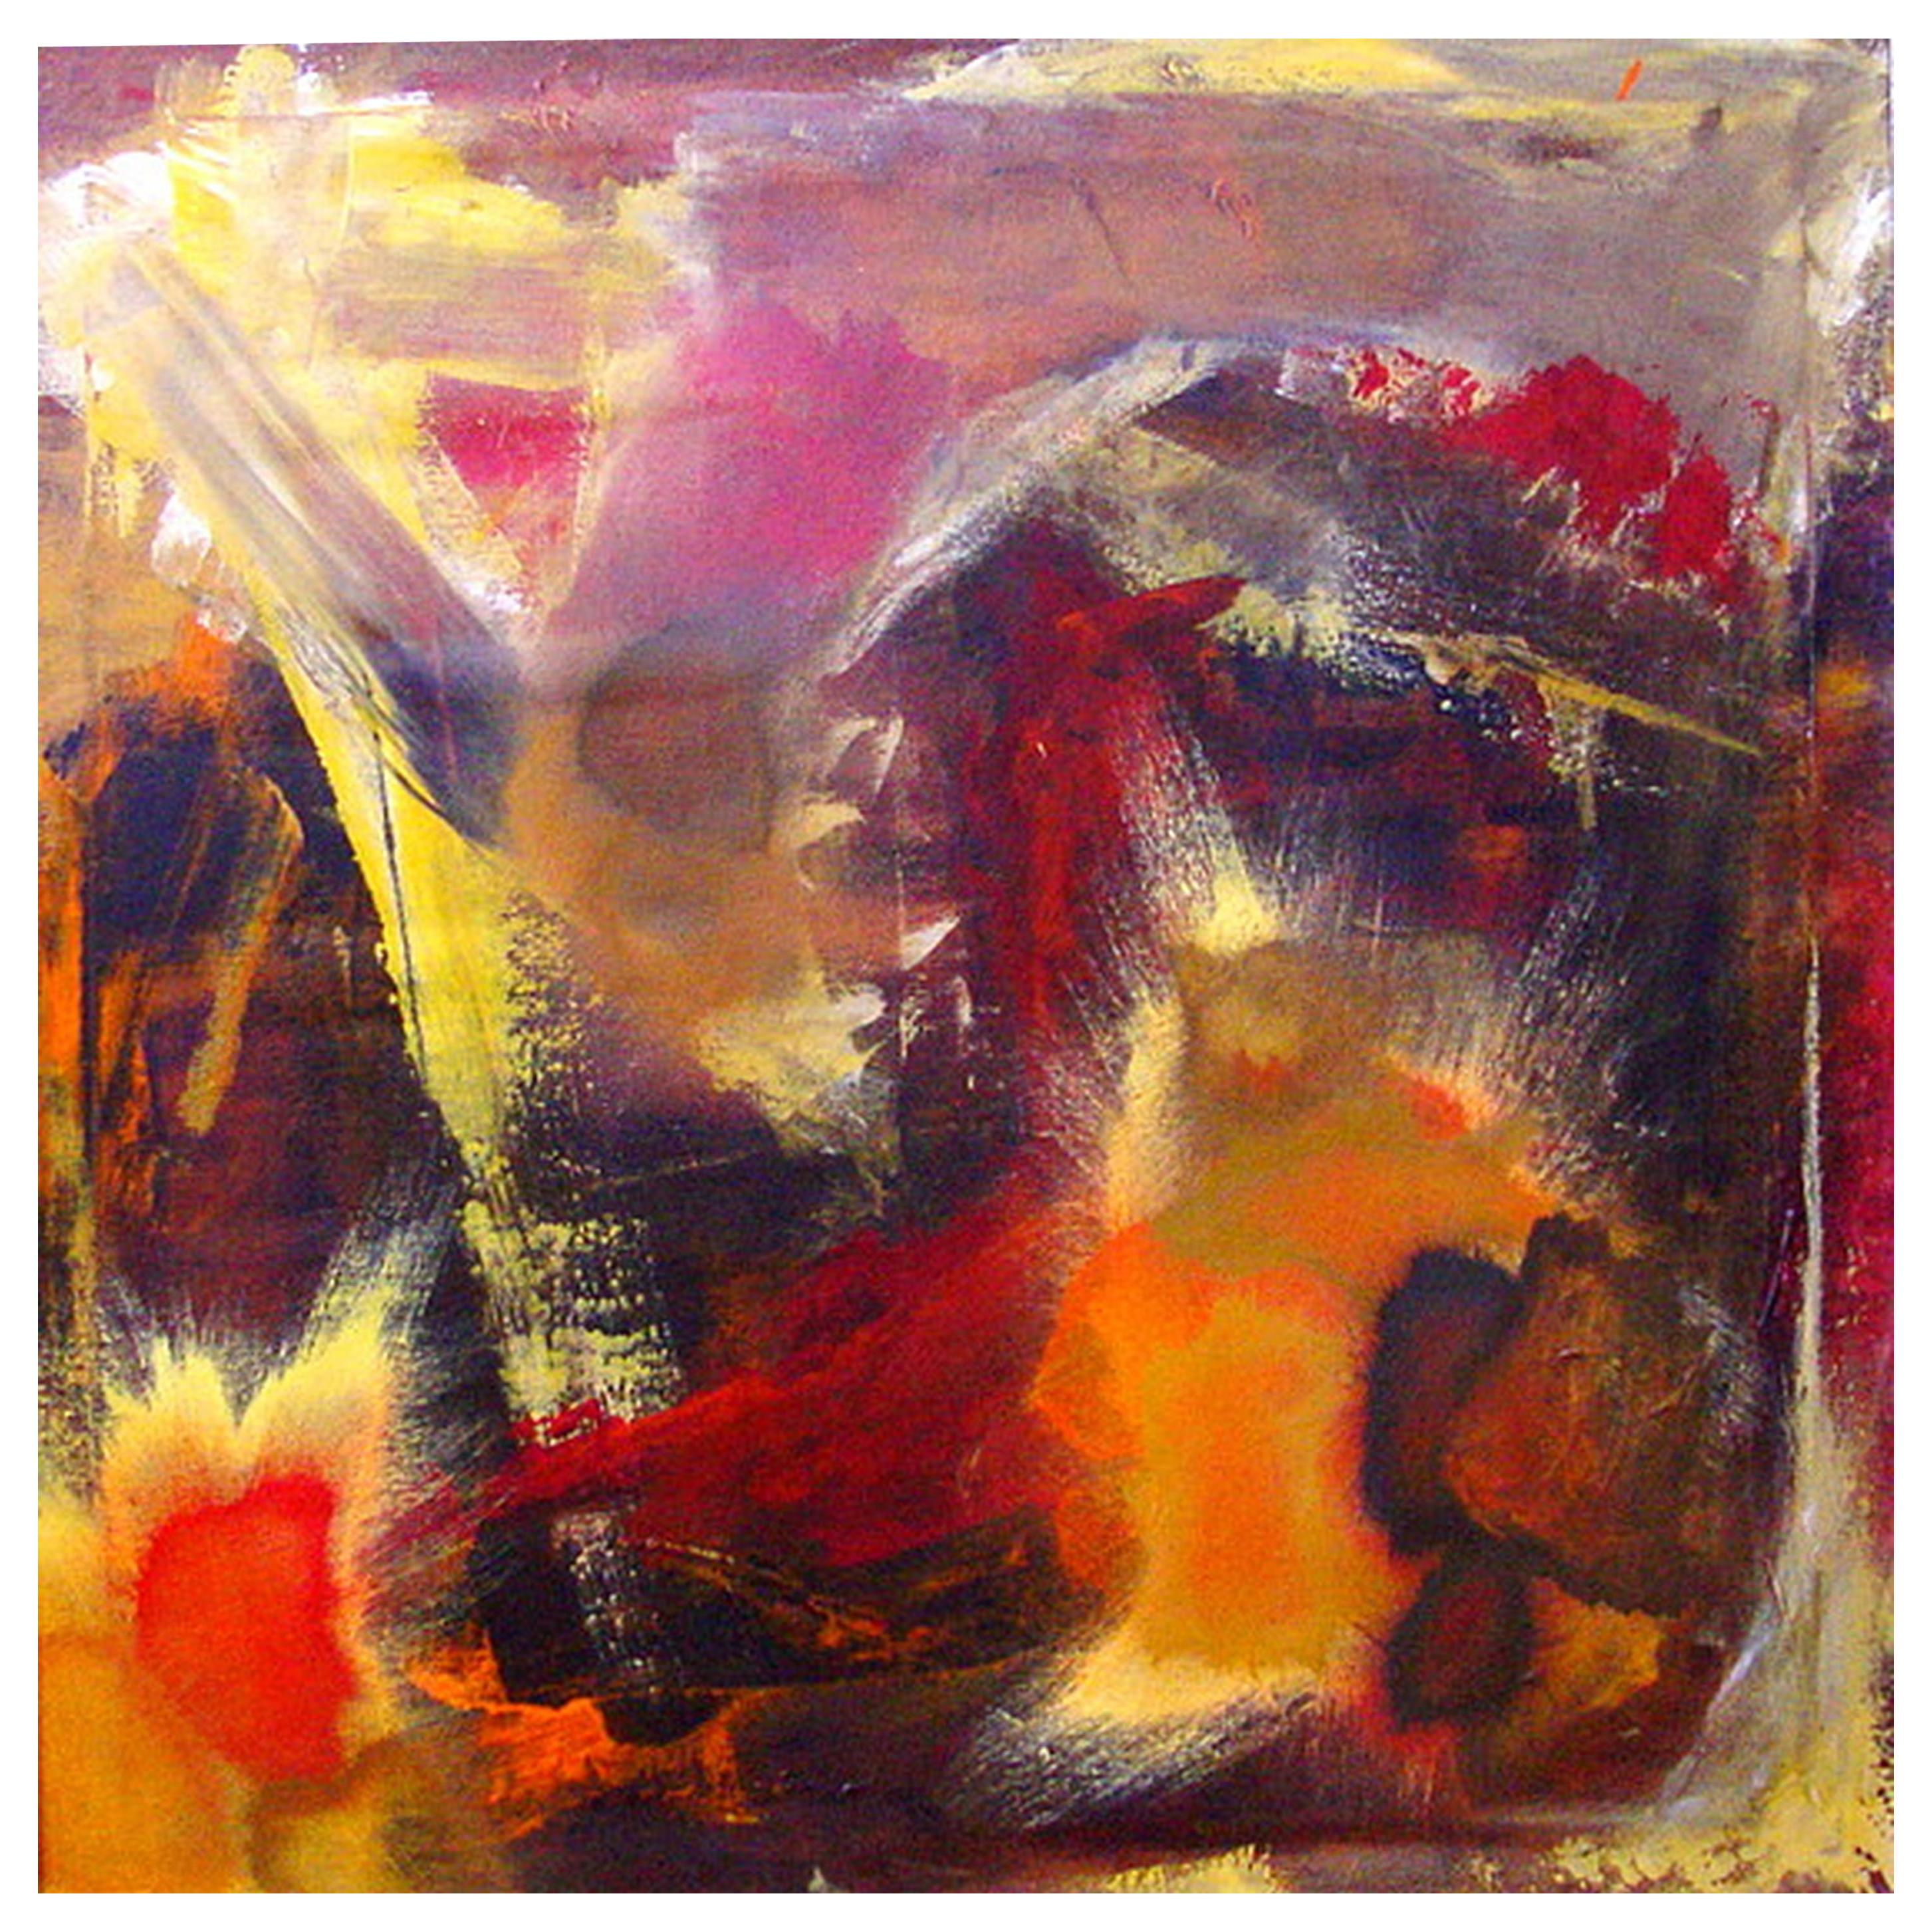 Abstract Expressionist Painting, Acrylic on Canvas, Framed, Signed